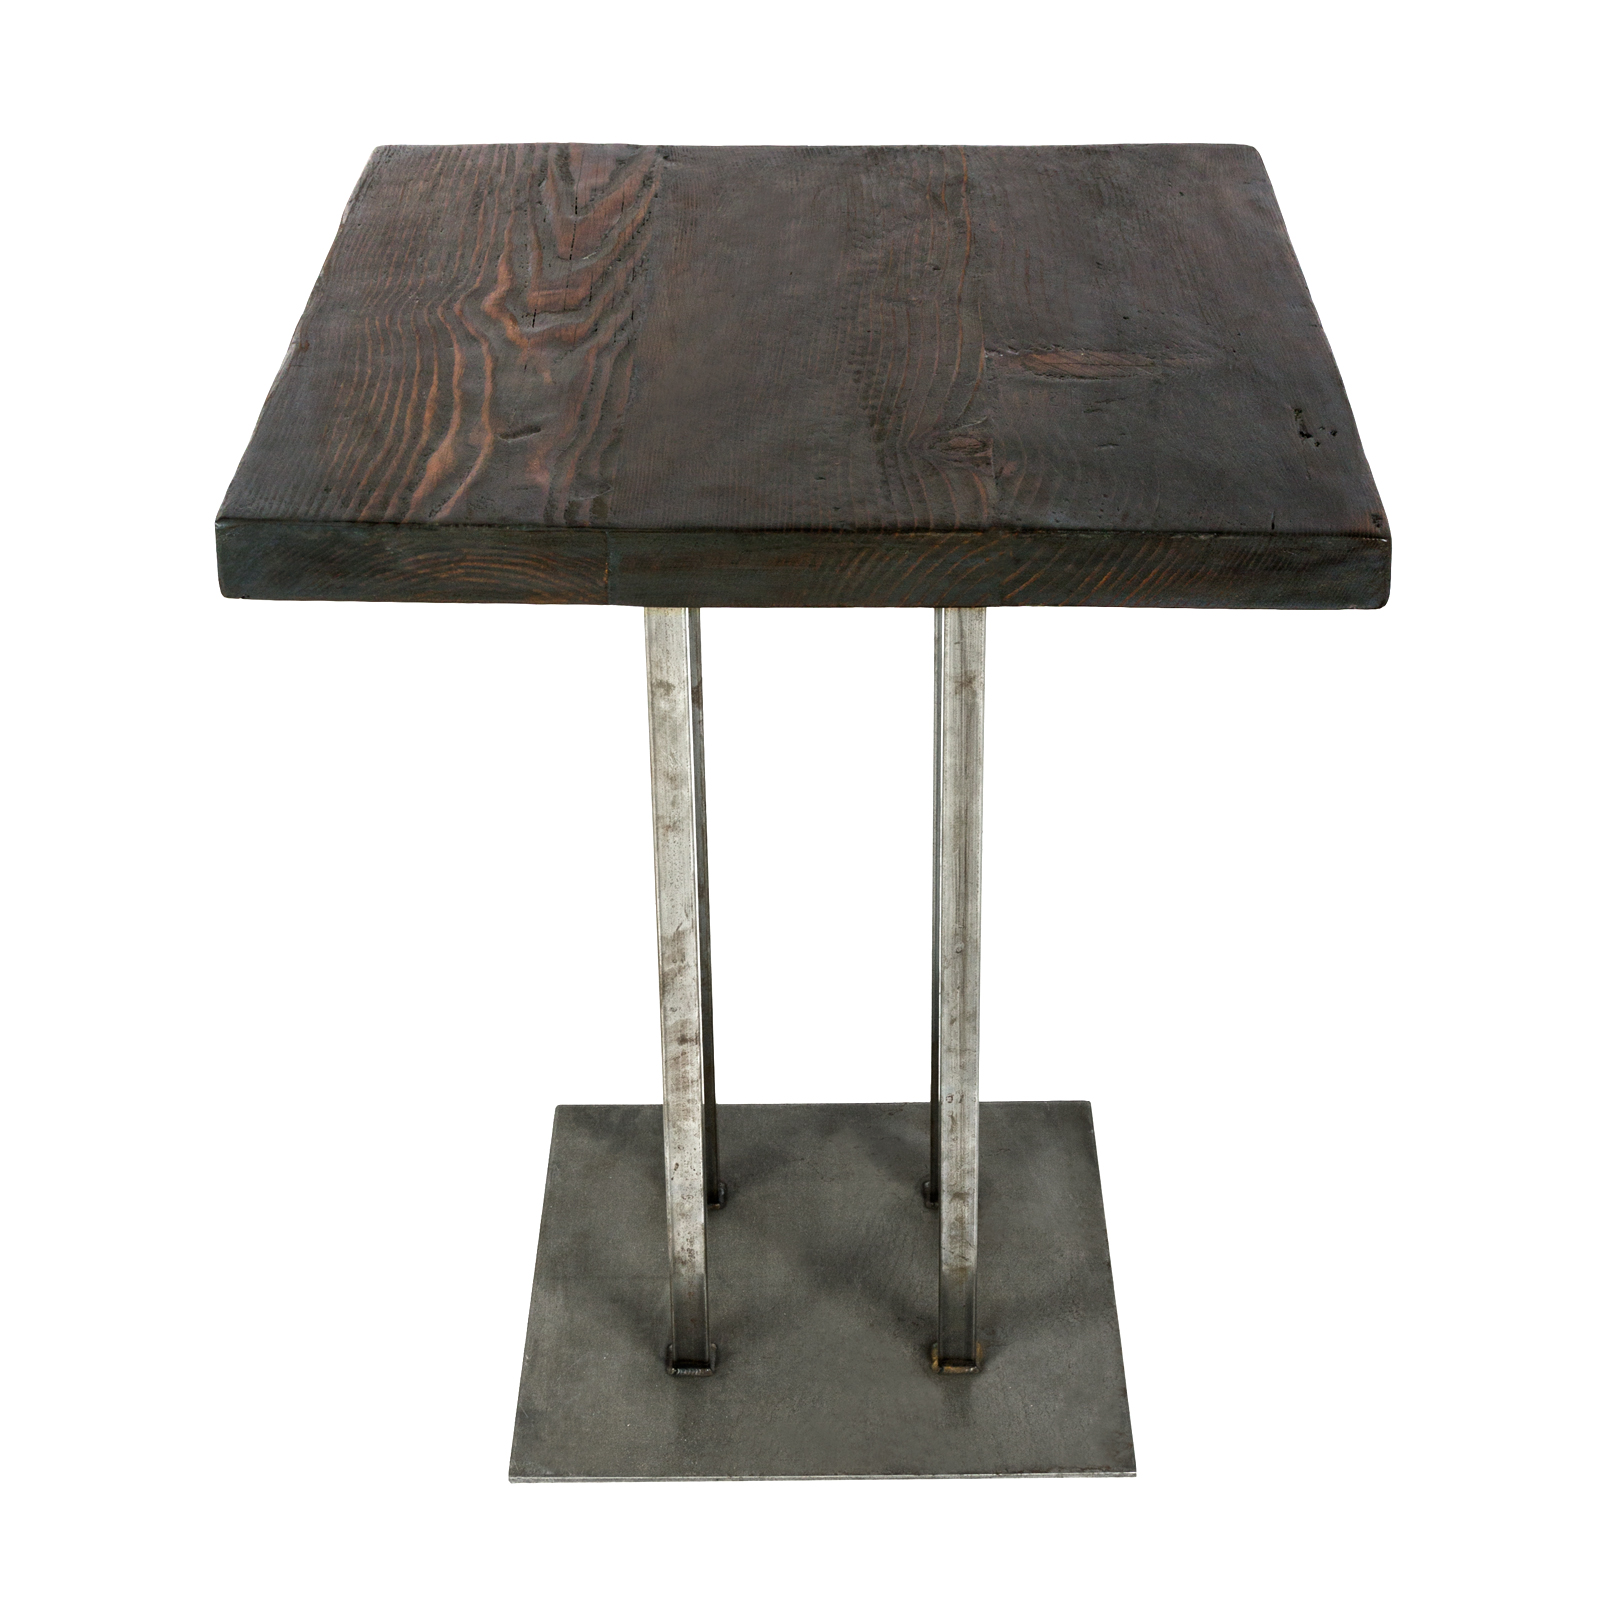 Square restaurant tables - Twin Peaks Caf Table Square